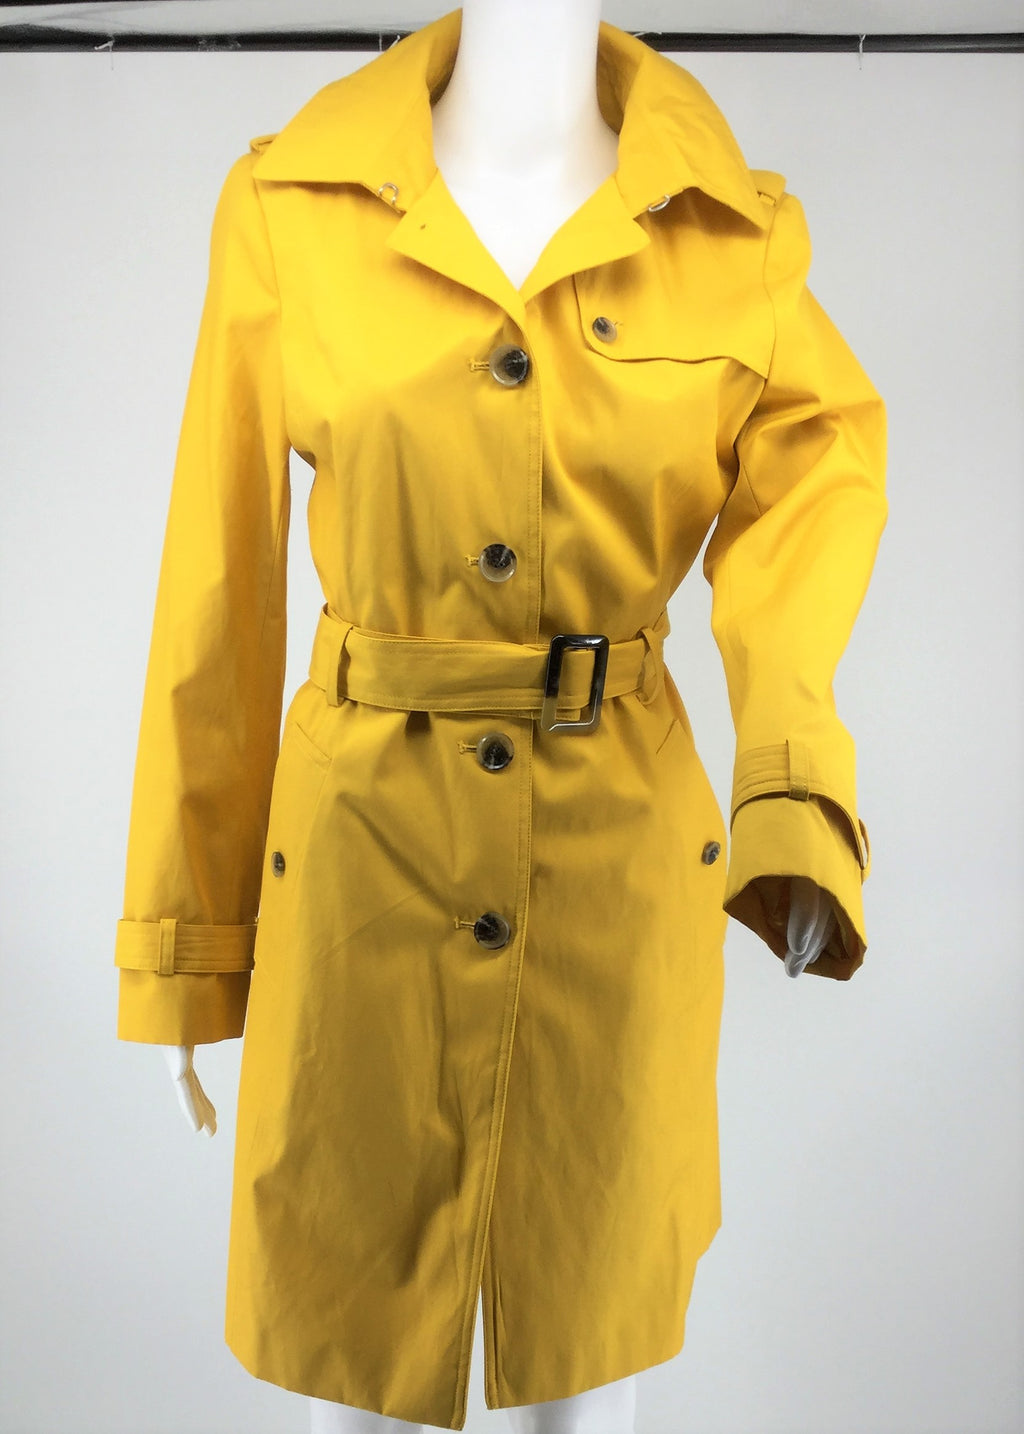 Dkny Yellow Rain Jacket Size:S